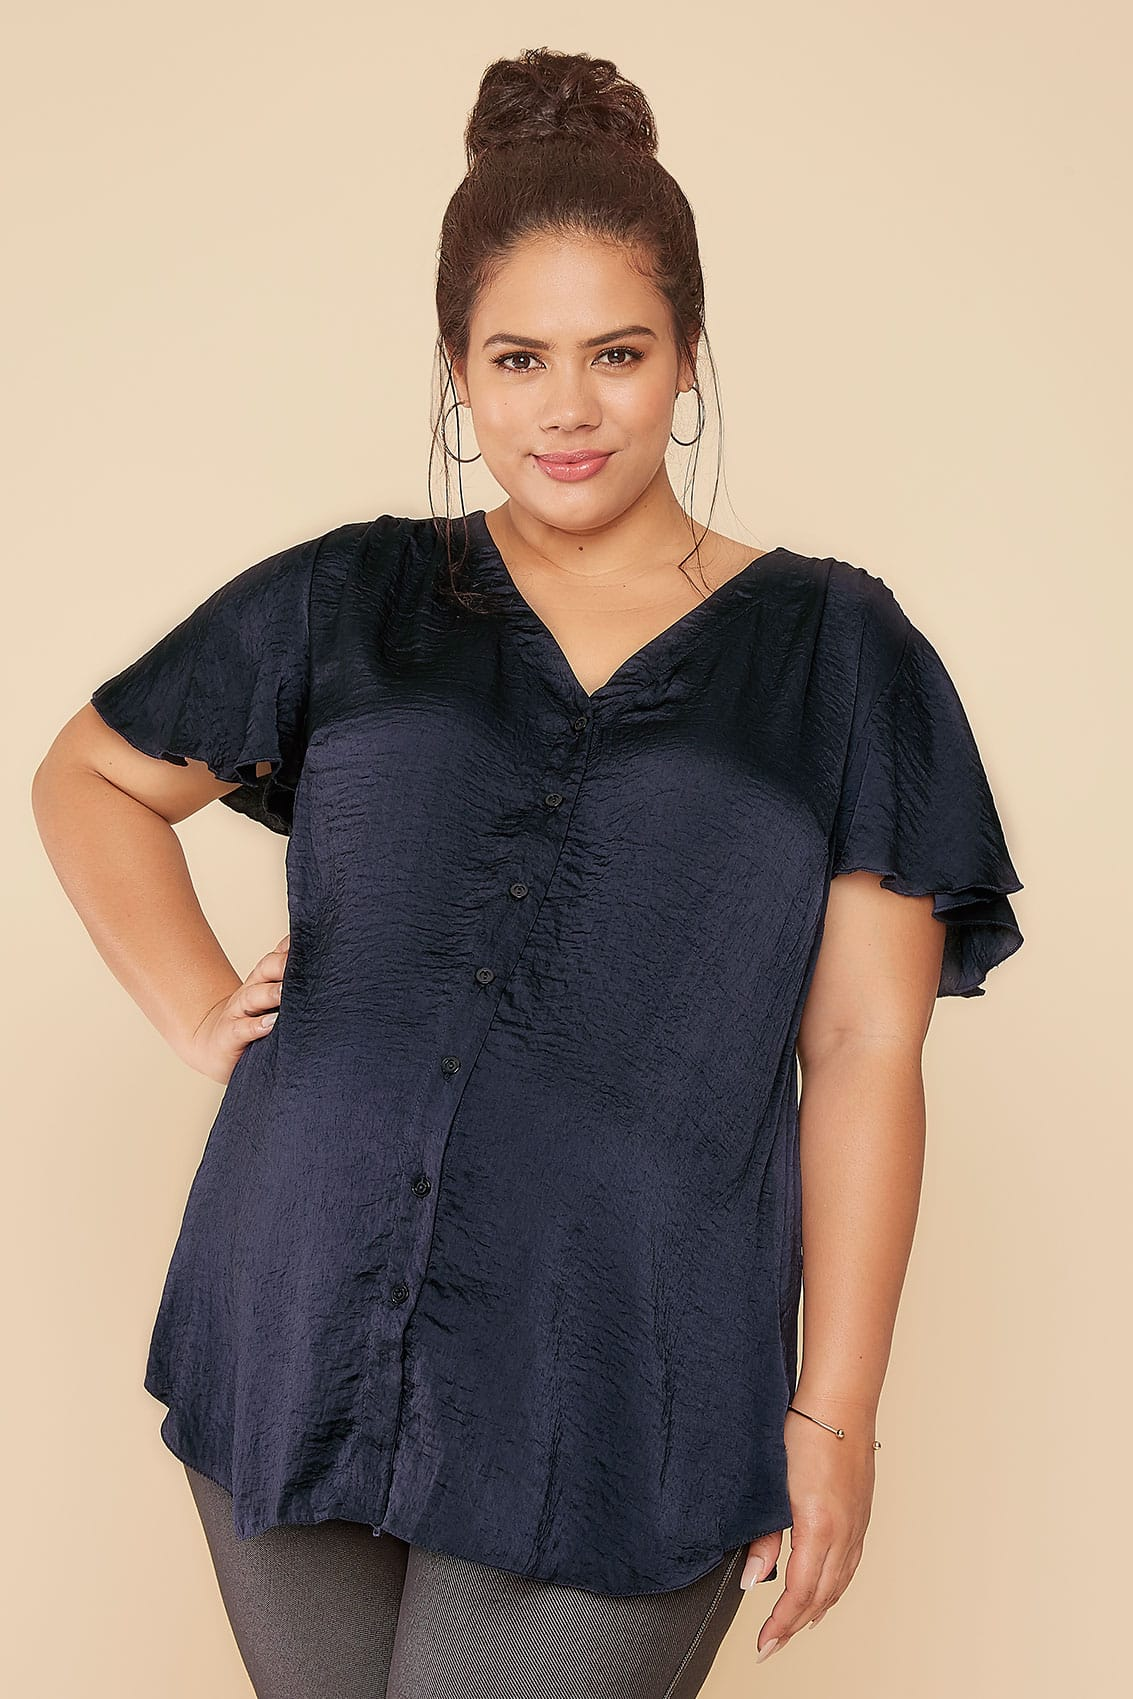 Nursing Sleep Bra moreover Nursing Sleep Bra as well Bump It Up Maternity Navy Blouse With Angel Sleeves P additionally 12 Mcare Mobilitt Von Menschen Mit Behinderungen Und Lteren Menschen additionally Nursing Sleep Bra. on tr band nursing care